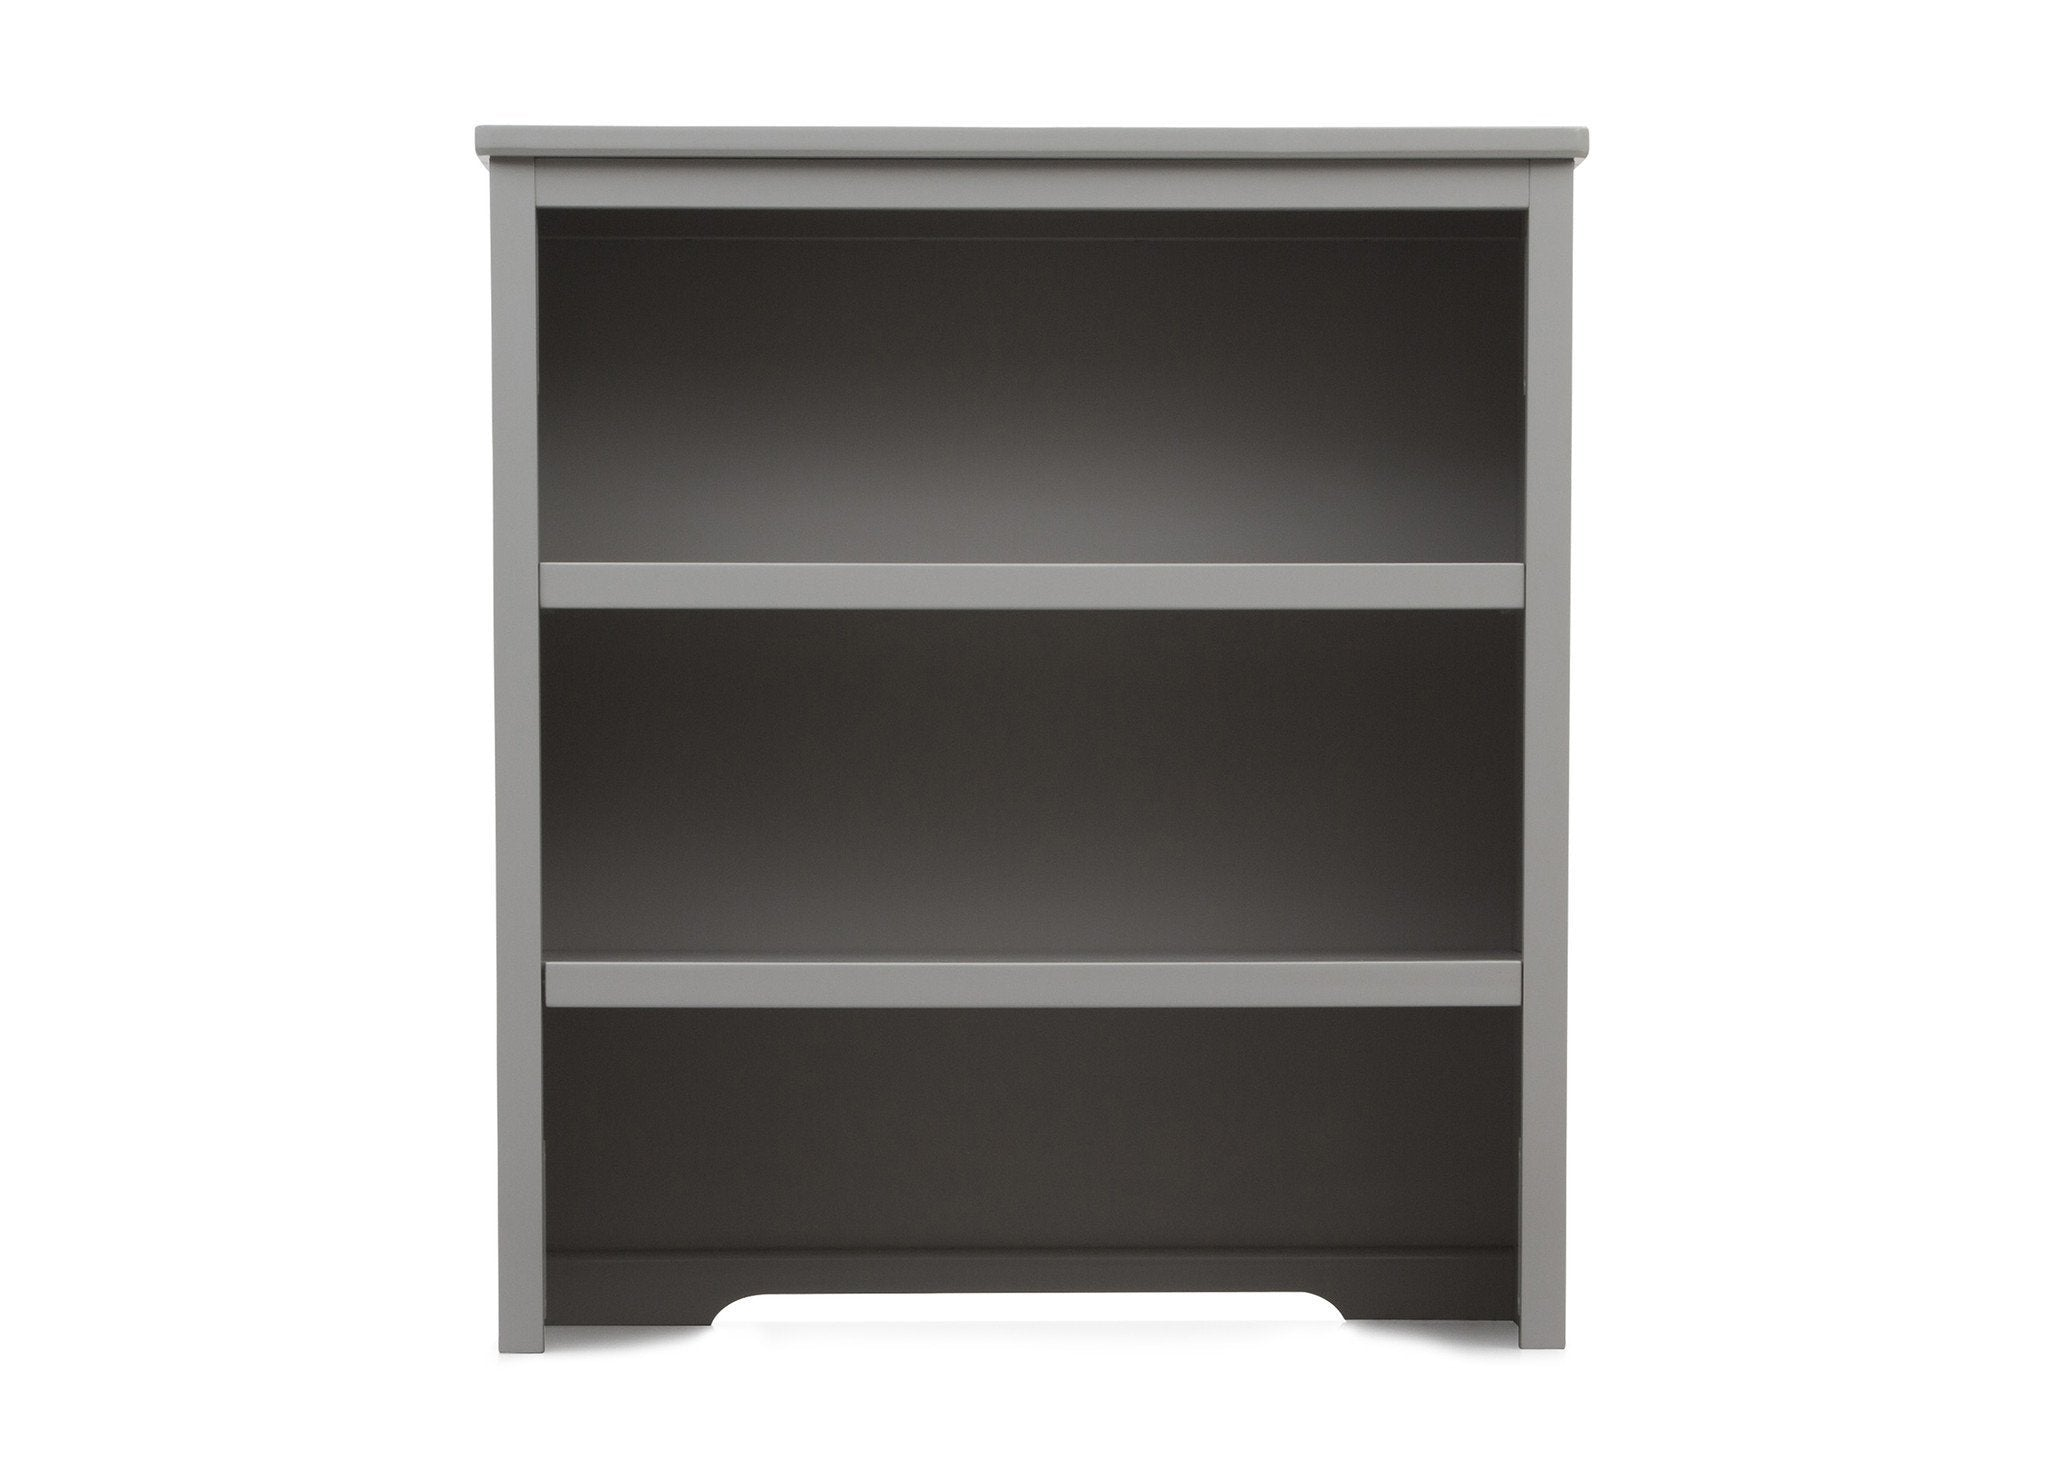 coniston room cumbria bookcases oak dvd archives cd bookcase category product rack living